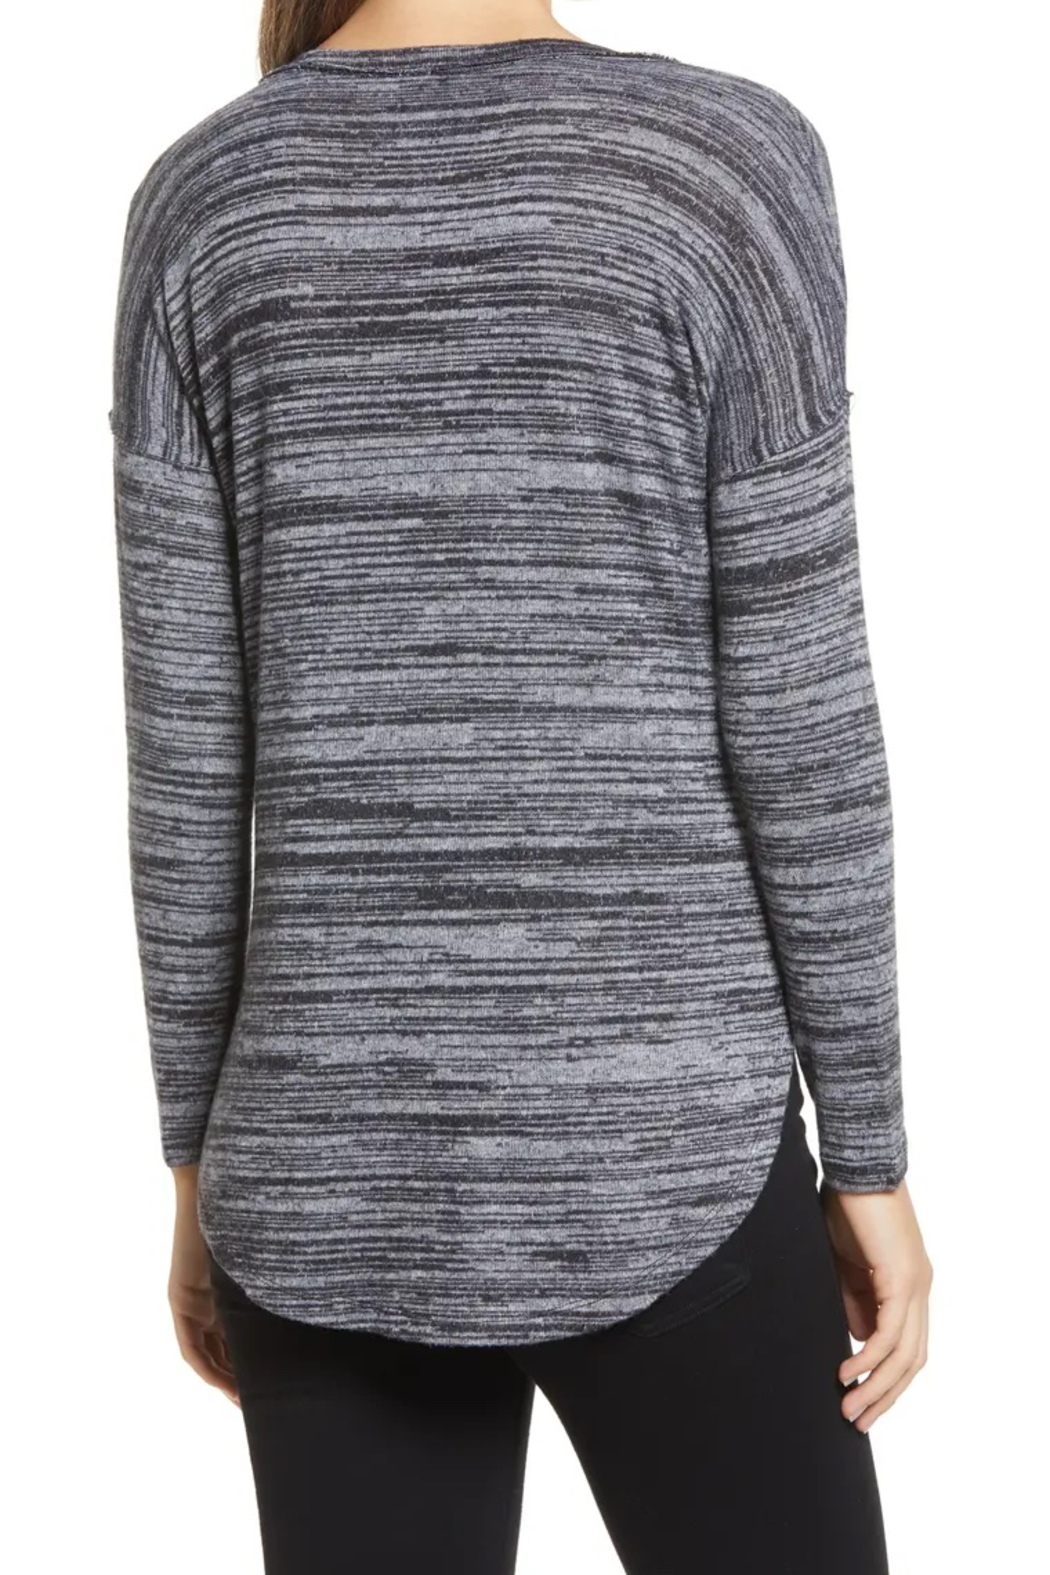 Bobeau Space Dyed Knit Top - Side Cropped Image